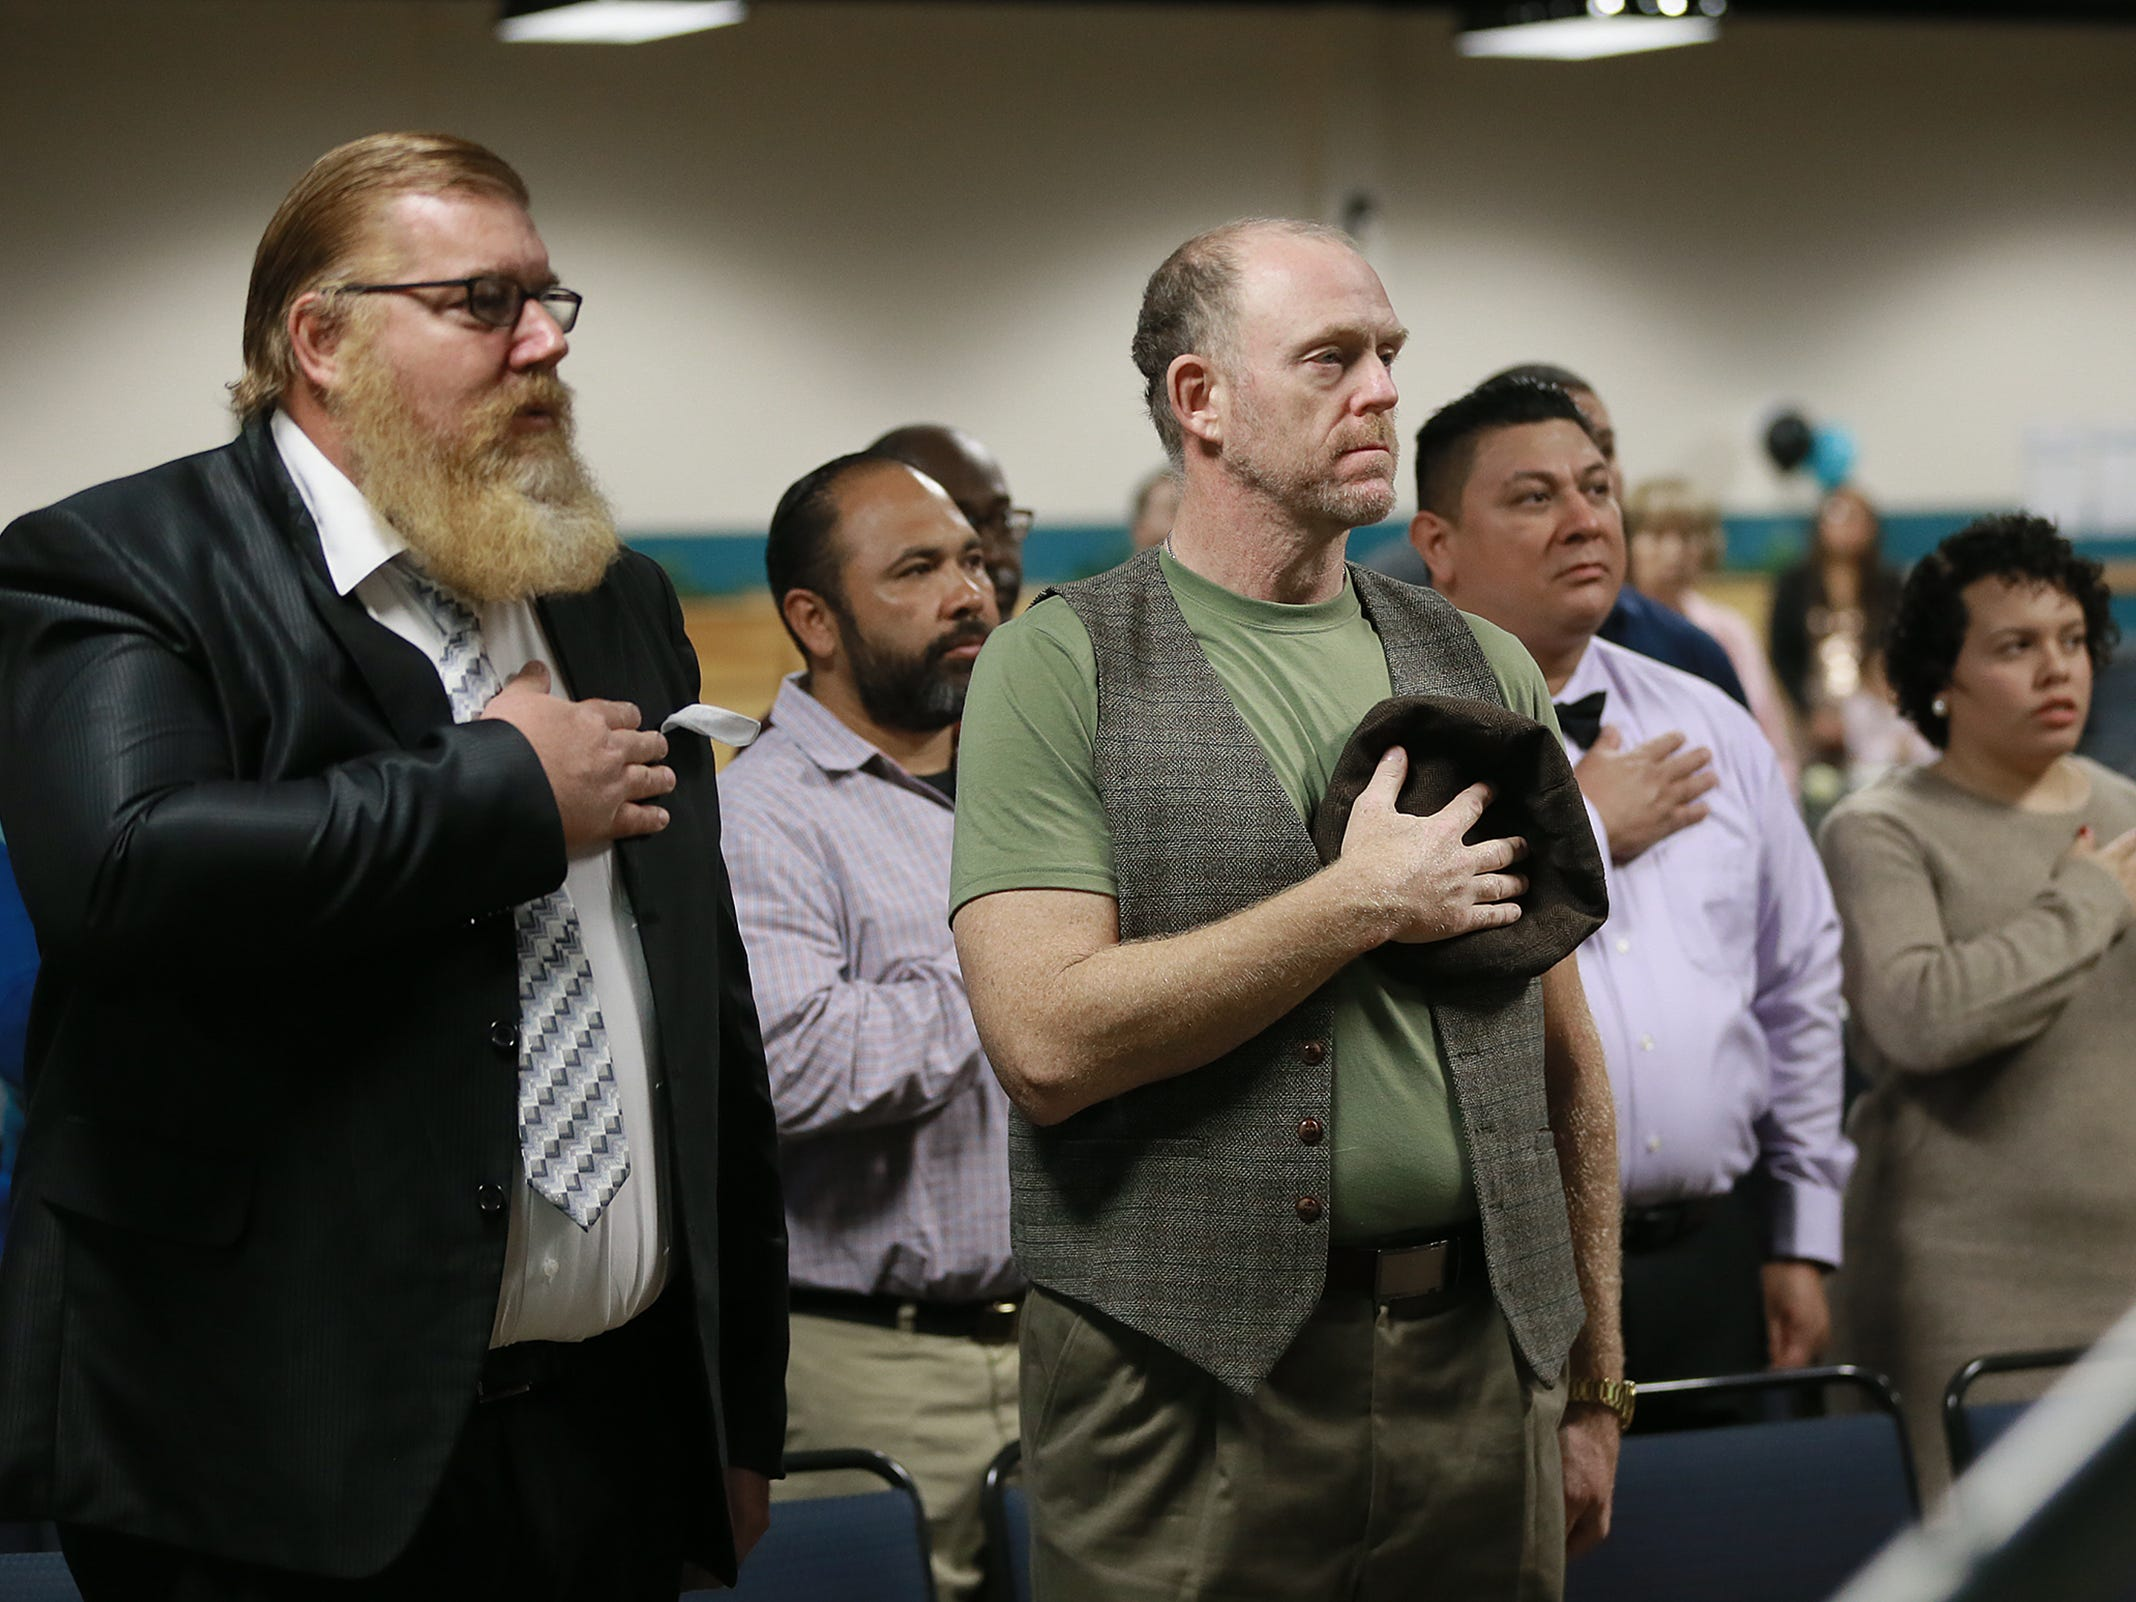 The El Paso Community College Veteran Resource Center hosted a pre-commencement ceremony Wednesday. Veterans who are graduating from EPCC received a challenge coin and a red, white and blue cord to wear on graduation day. About 43 of the 90 veterans graduating this semester participated in the event at the EPCC Services Center.